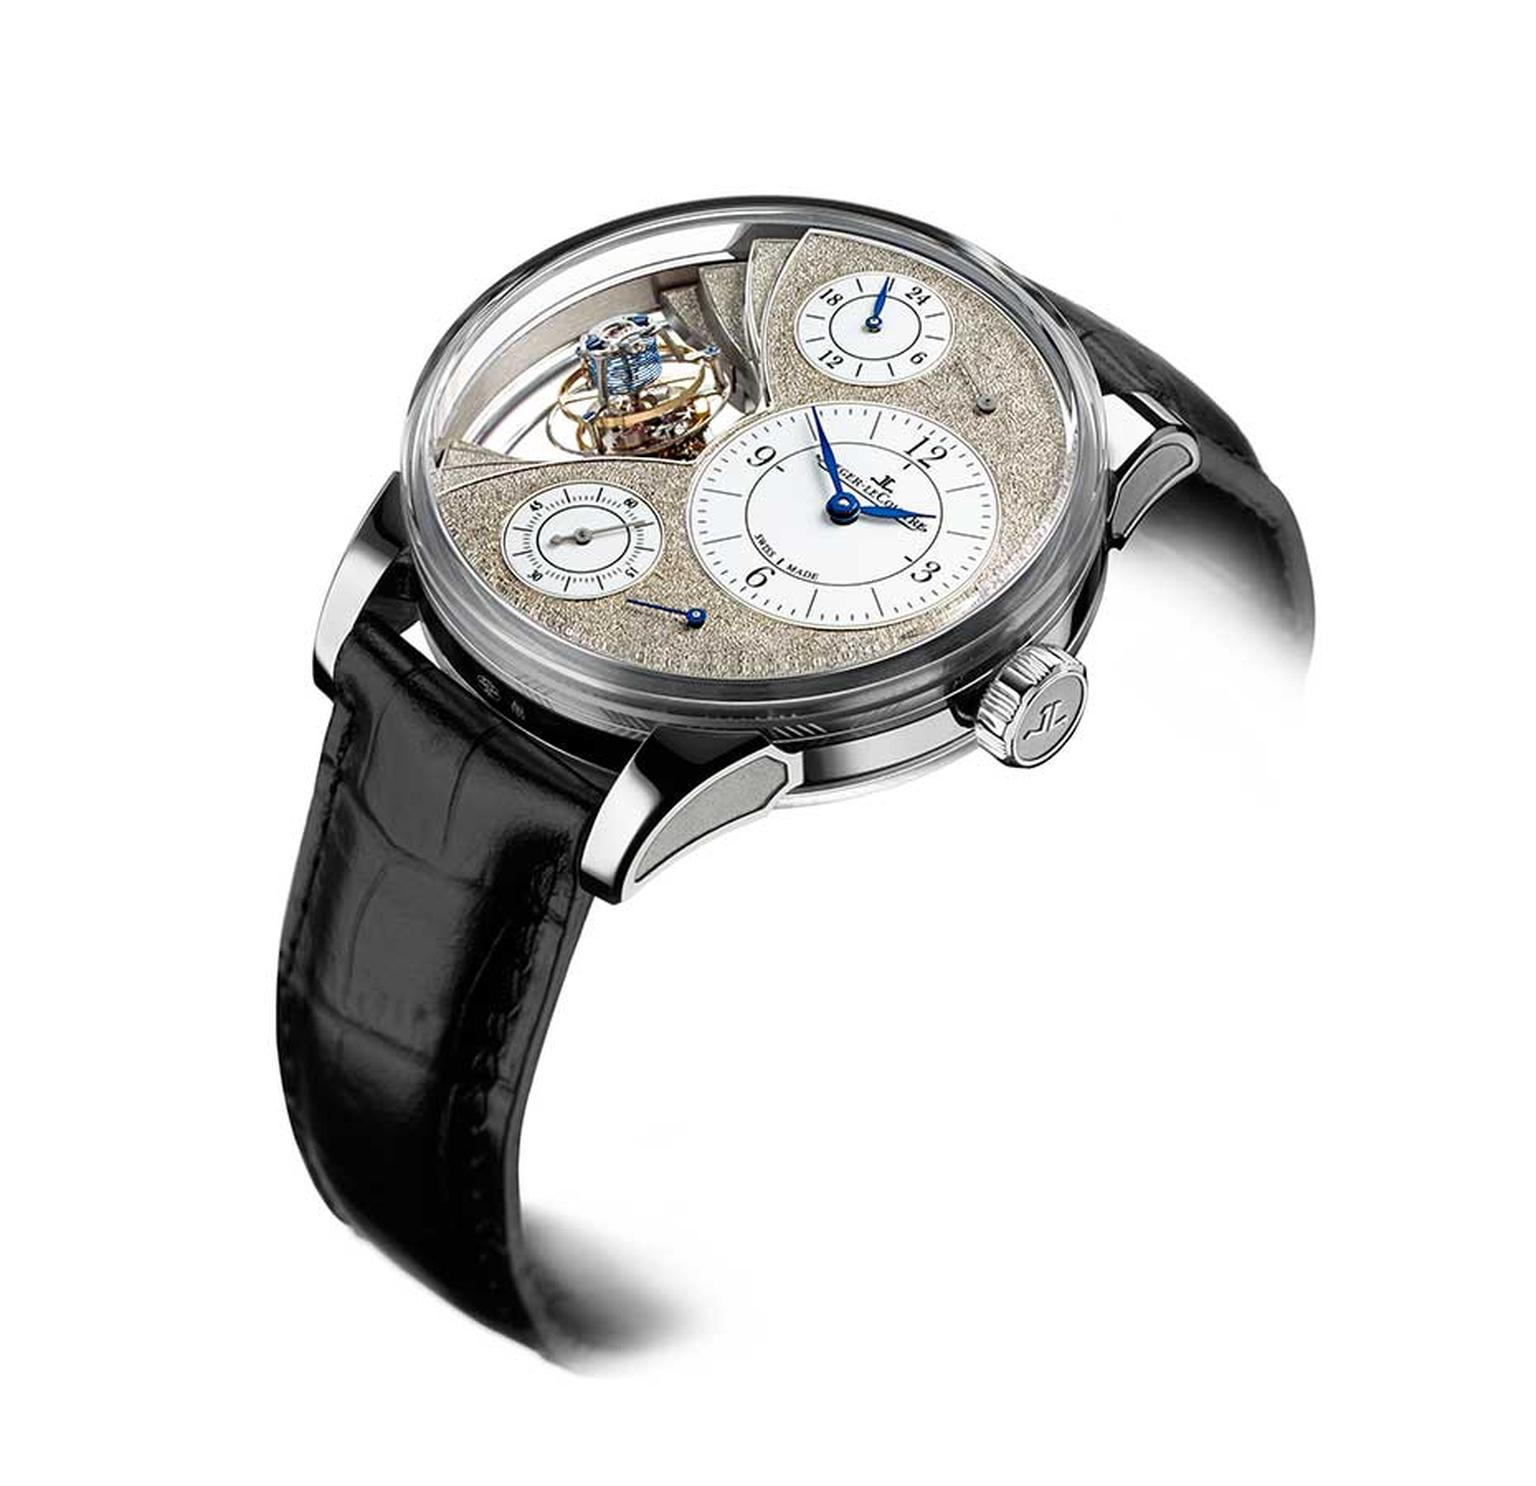 Jaeger-LeCoultre Hybris Artistica collection is a limited edition of just 12 watches.